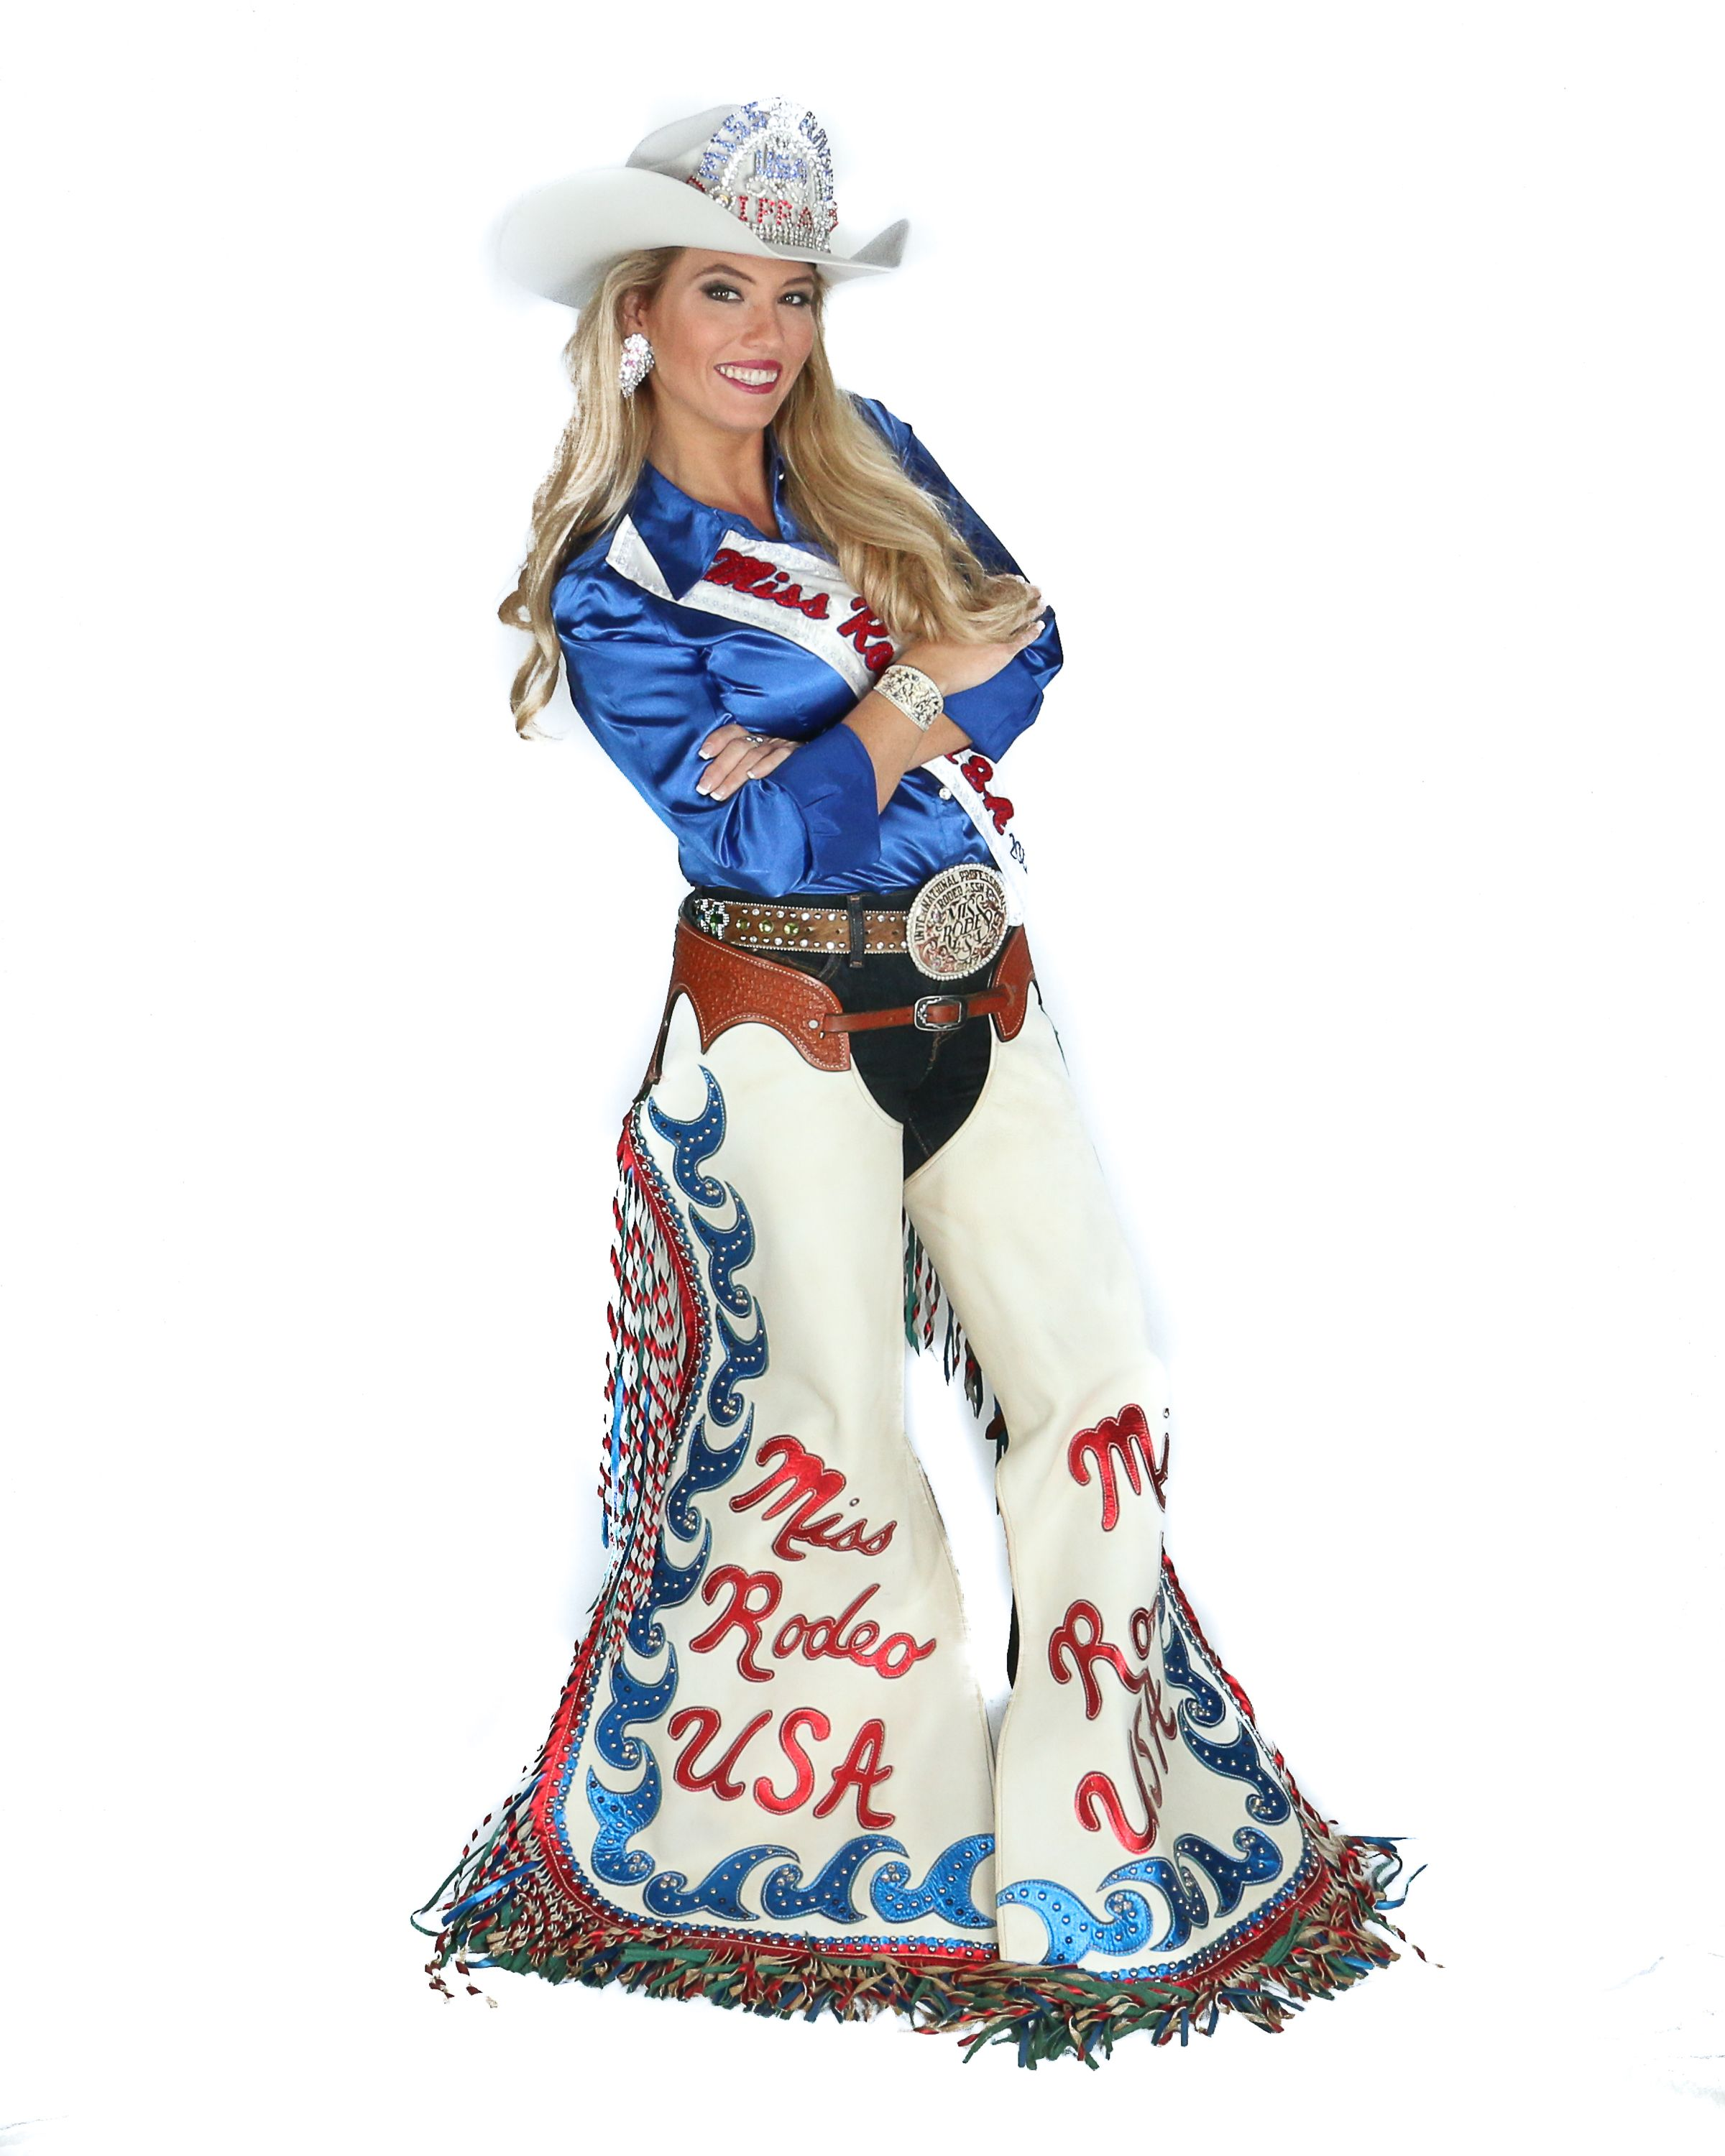 miss rodeo america 2020